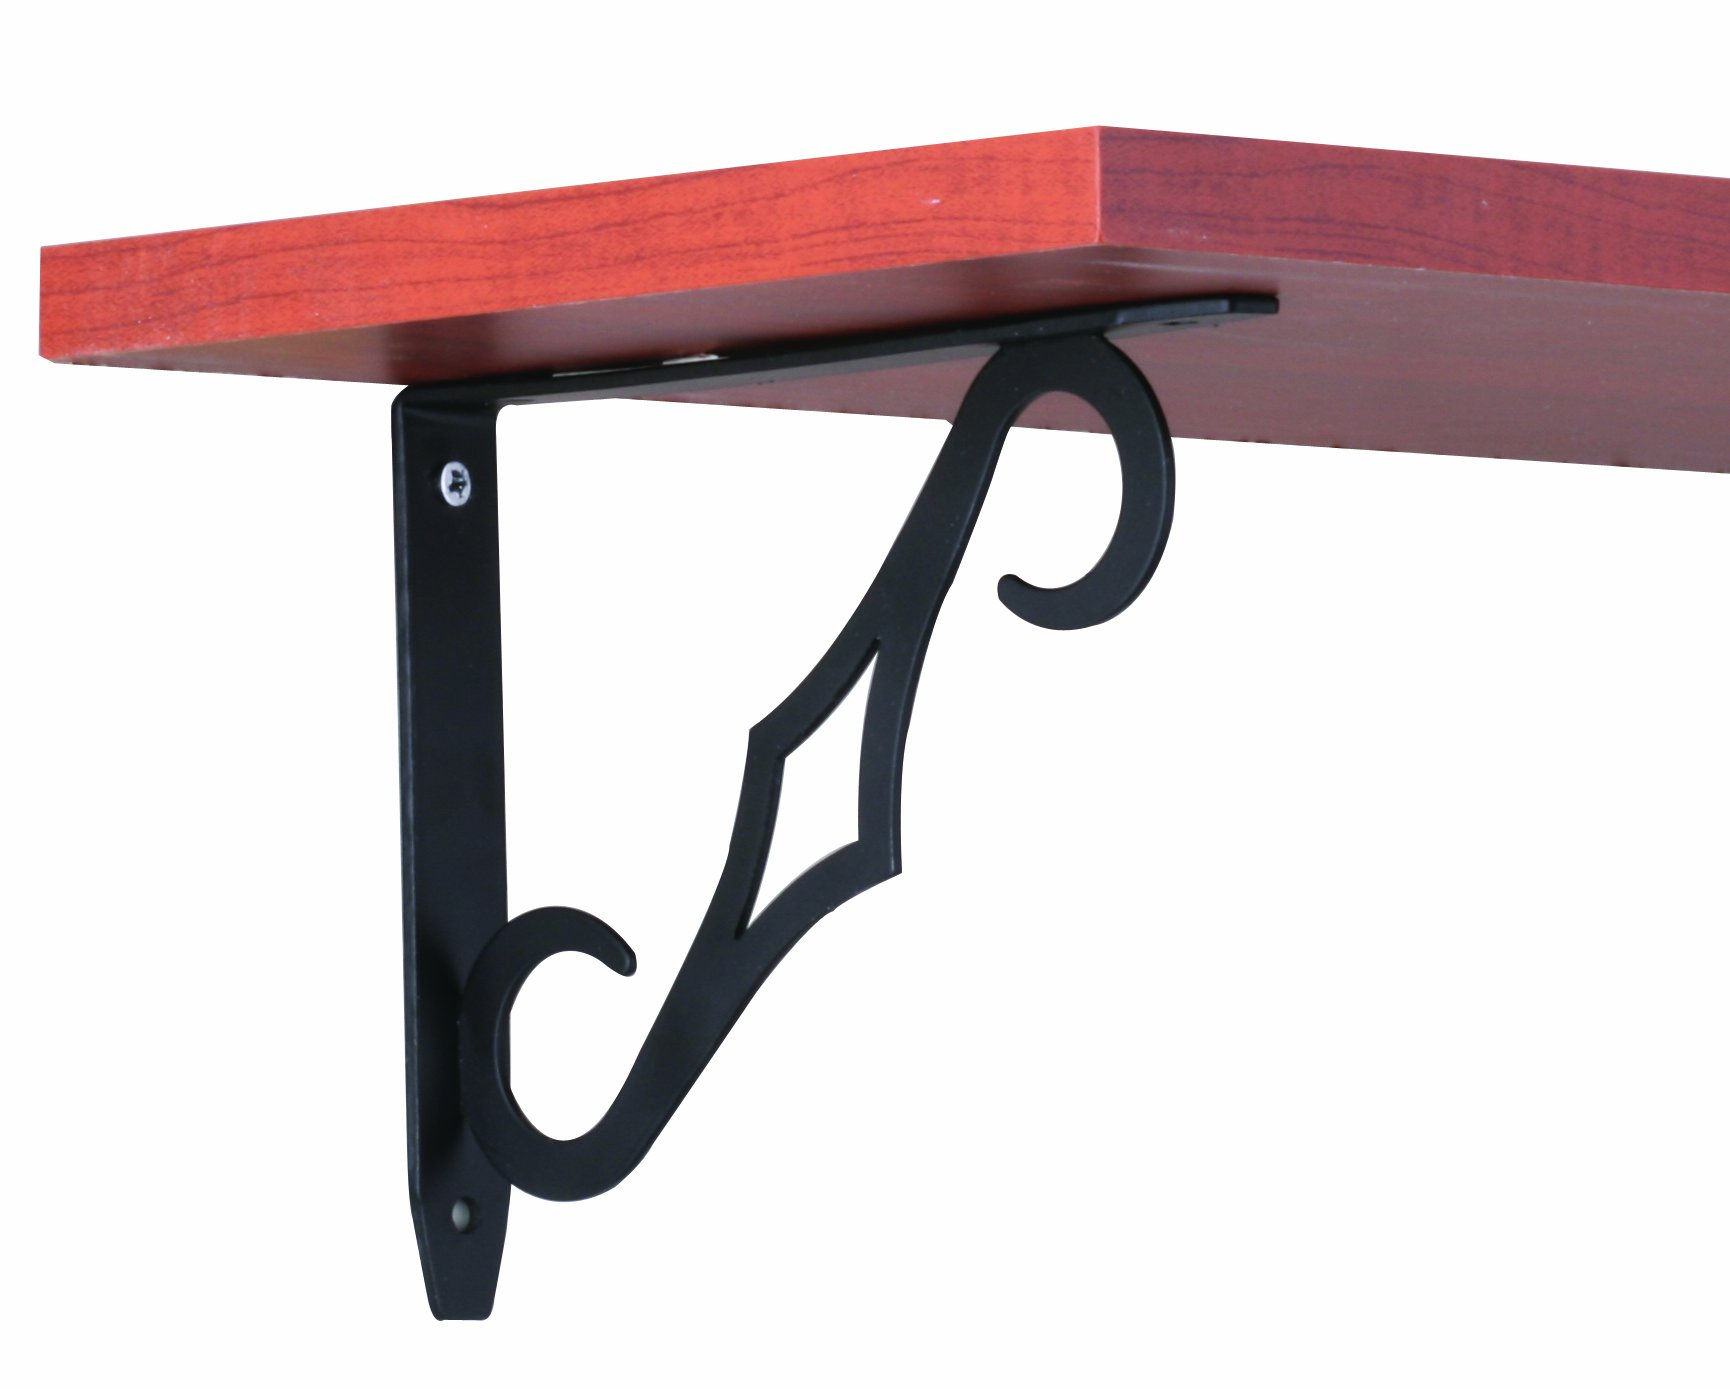 Knape & Vogt John Sterling Colonial Style Decorative Shelf Bracket, 7-Inch, Black, RP-0090-7BK - This decorative bracket measures 6-3/4-inches deep by 5-5/8-inches tall Designed to support shelves 6-inches to 8-inches in depth This design incorporates a tasteful colonial designed steel support brace attached to a durable steel L-bracket - wall-shelves, living-room-furniture, living-room - 61GrTJK9%2BKL -